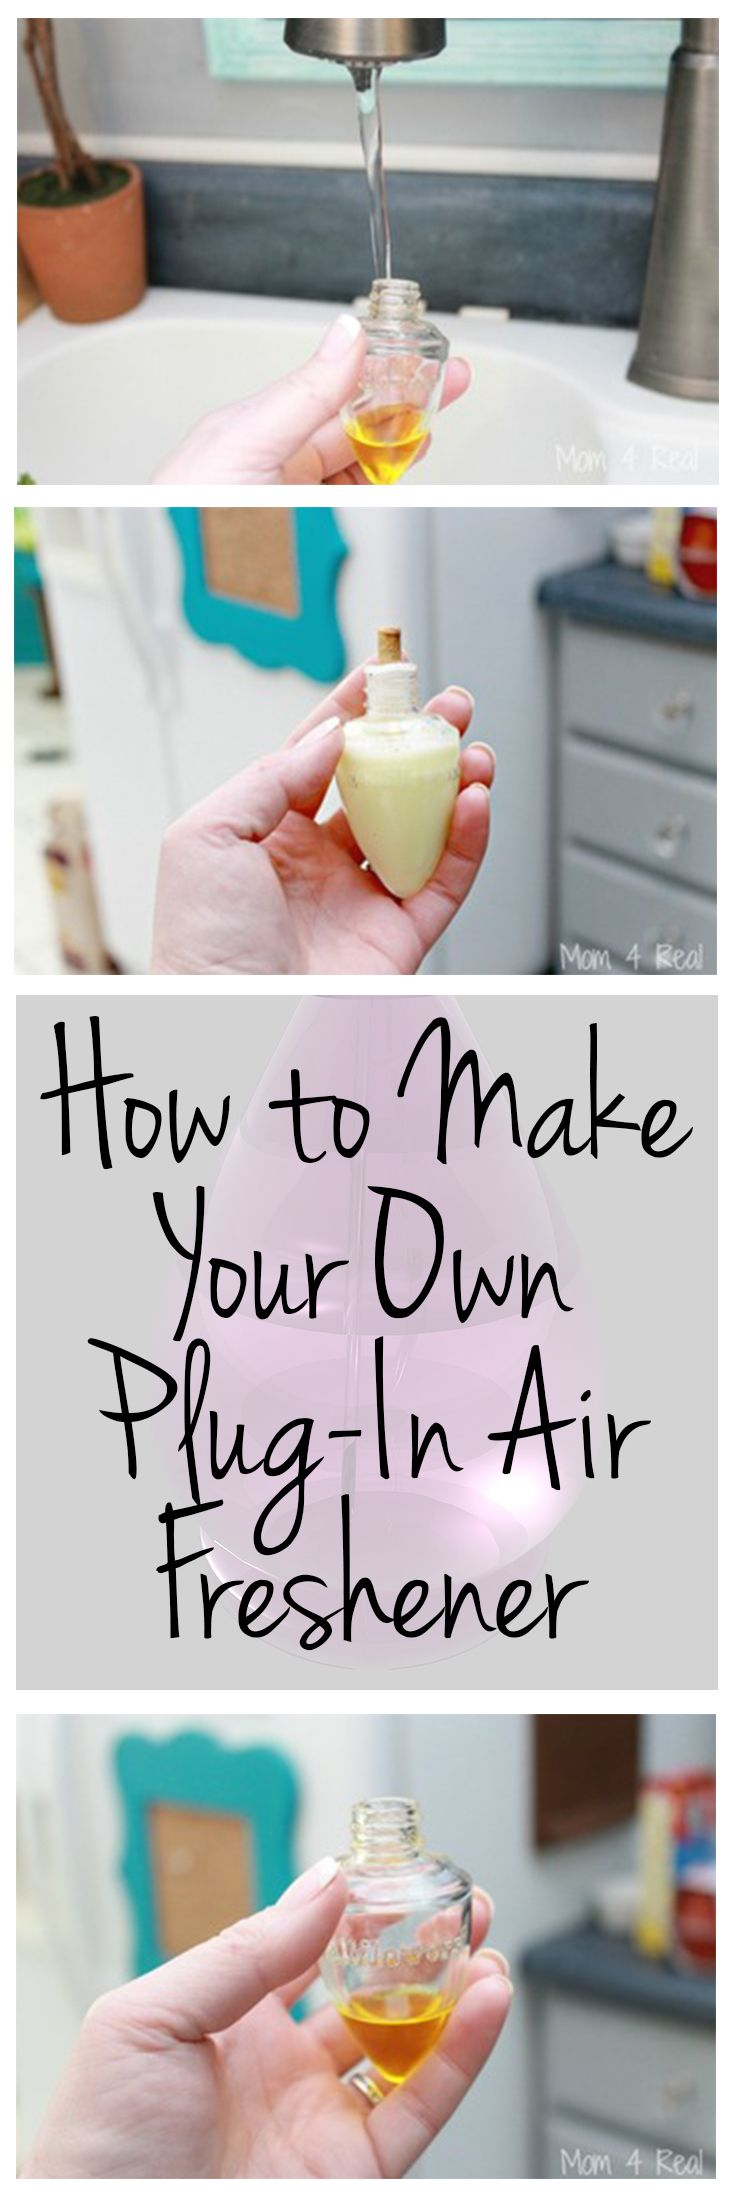 how to make your own plug in air freshener